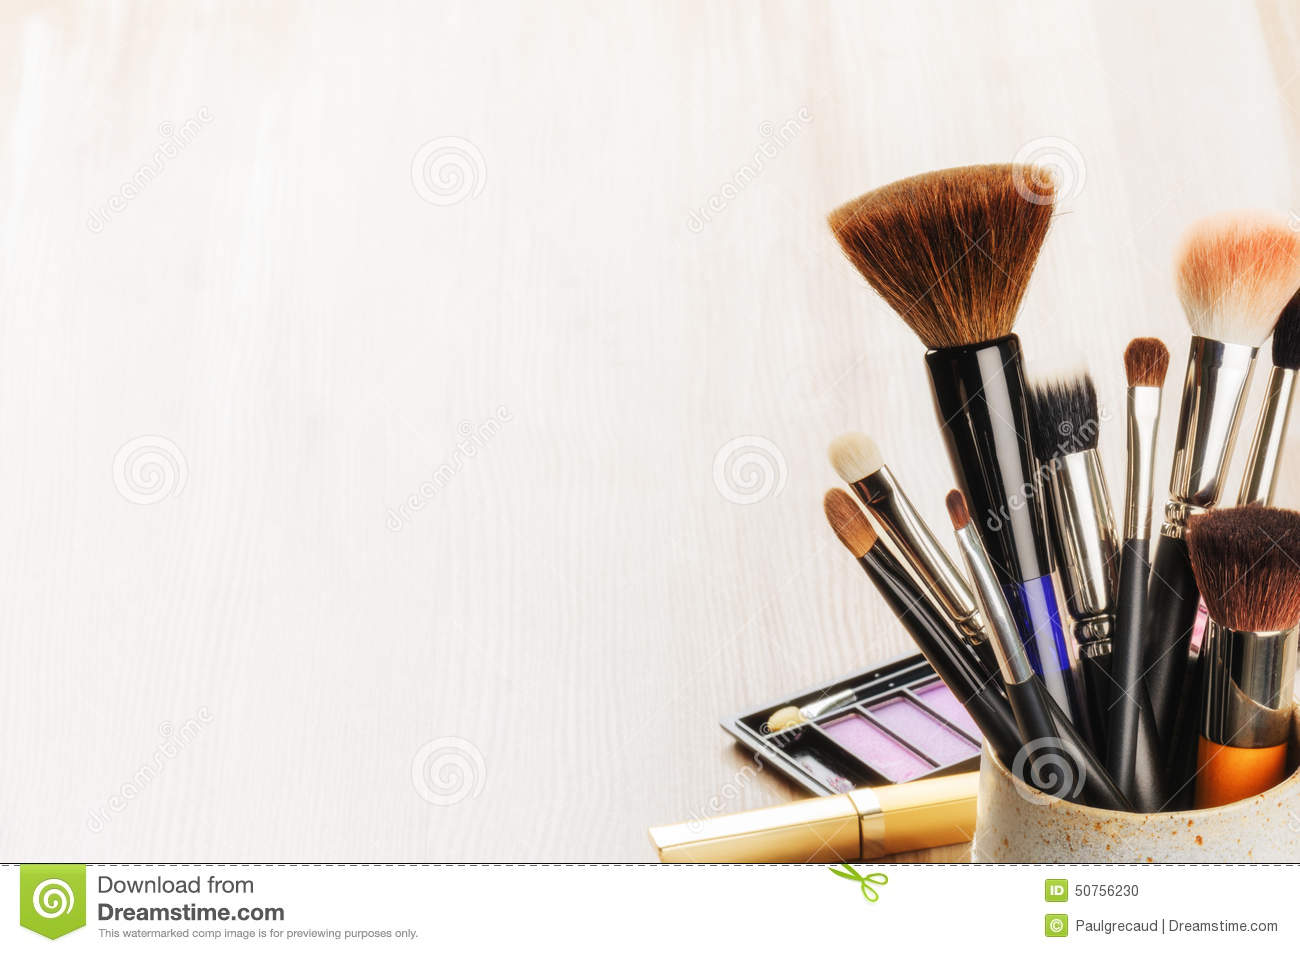 Chanel Wallpaper For Iphone 5 Various Makeup Brushes On Light Background Stock Photo